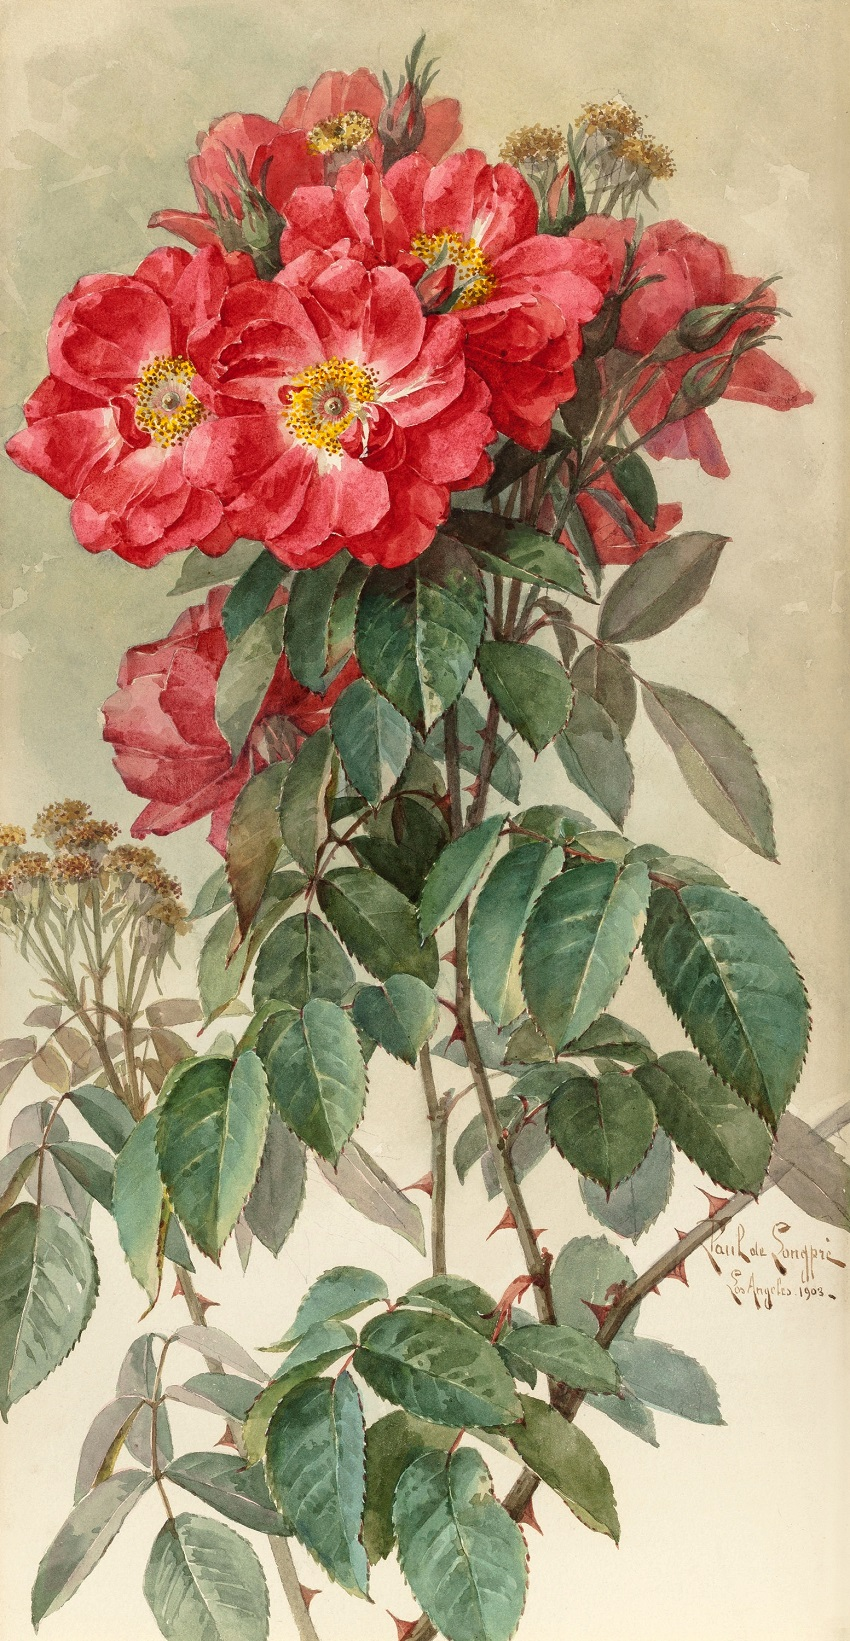 Branches of Ragged Robin Roses, 1903